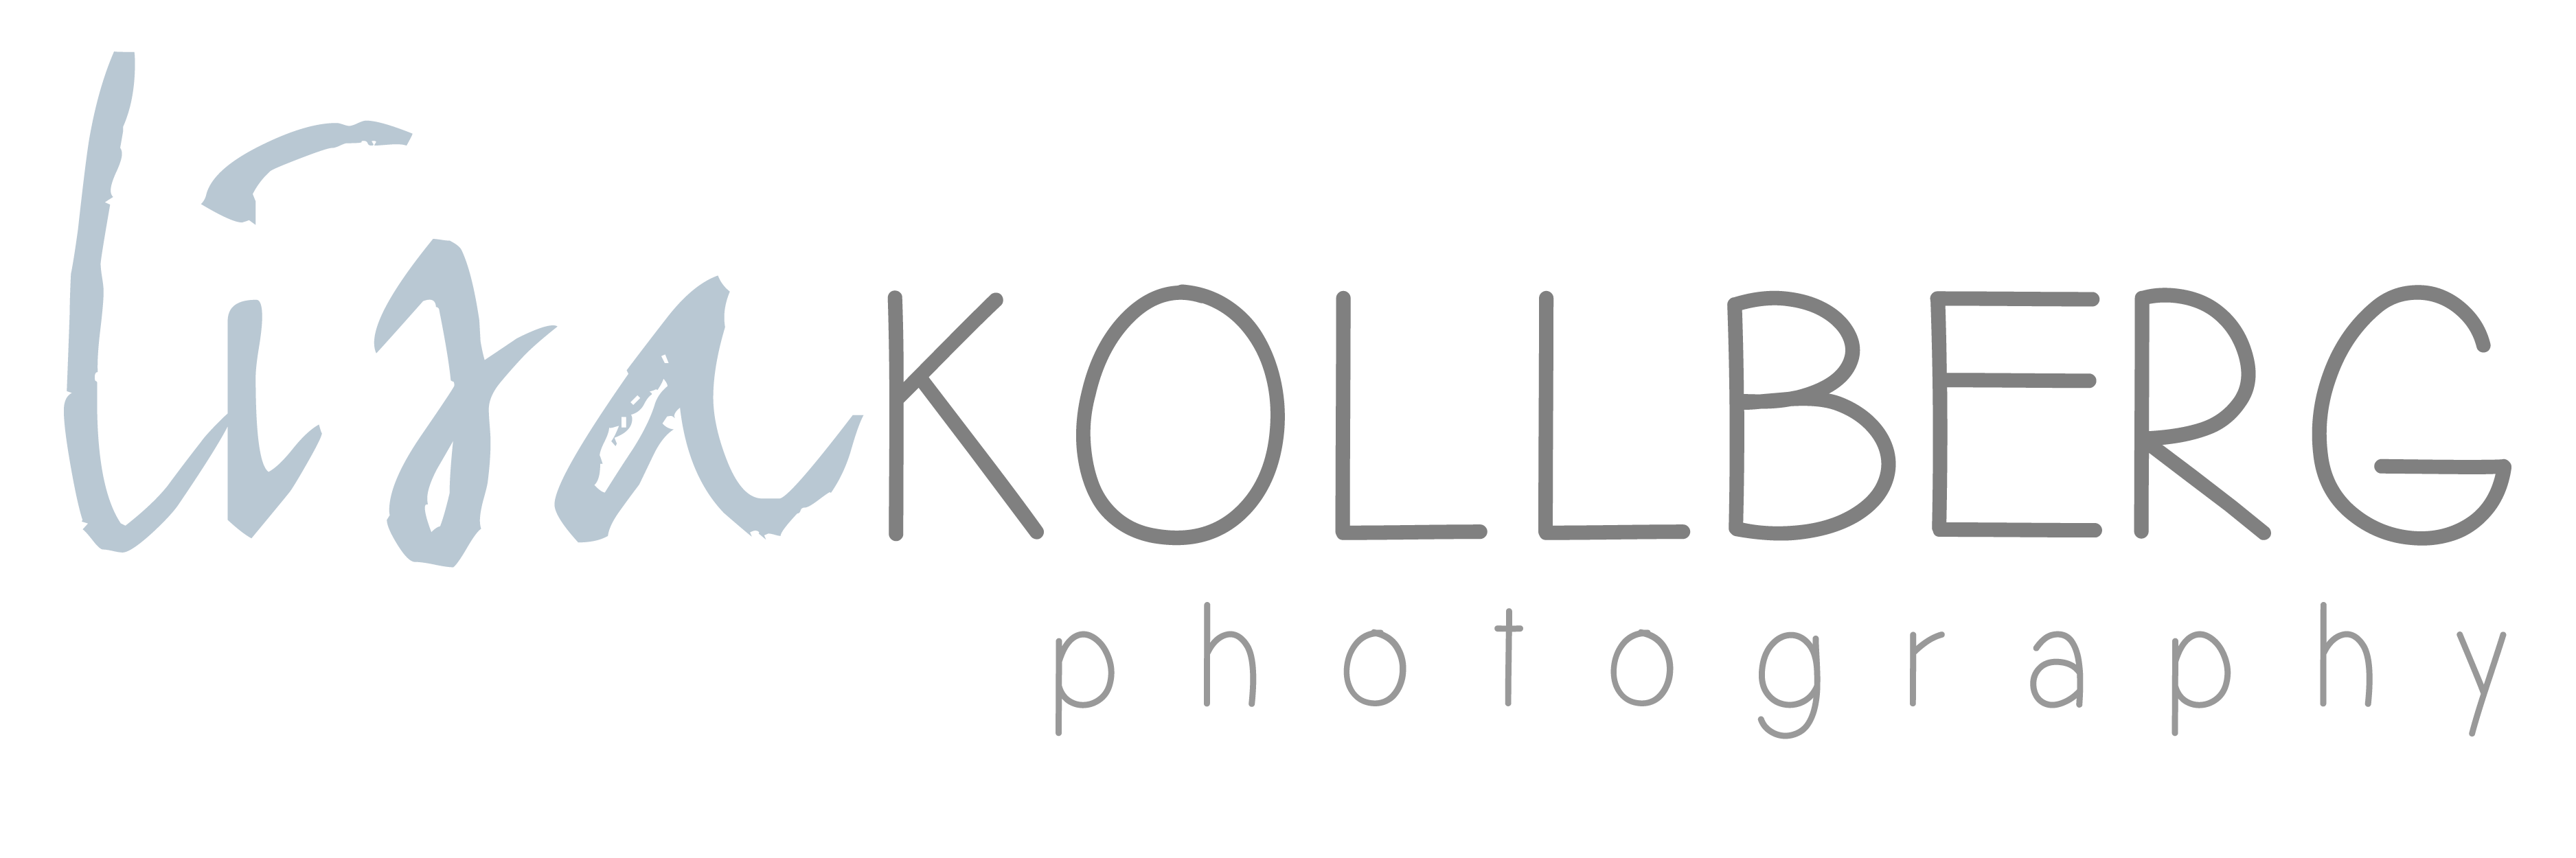 https://lisakollberg.com/wp-content/uploads/2017/08/Lisa-Kollbery-Photography-Logo.png